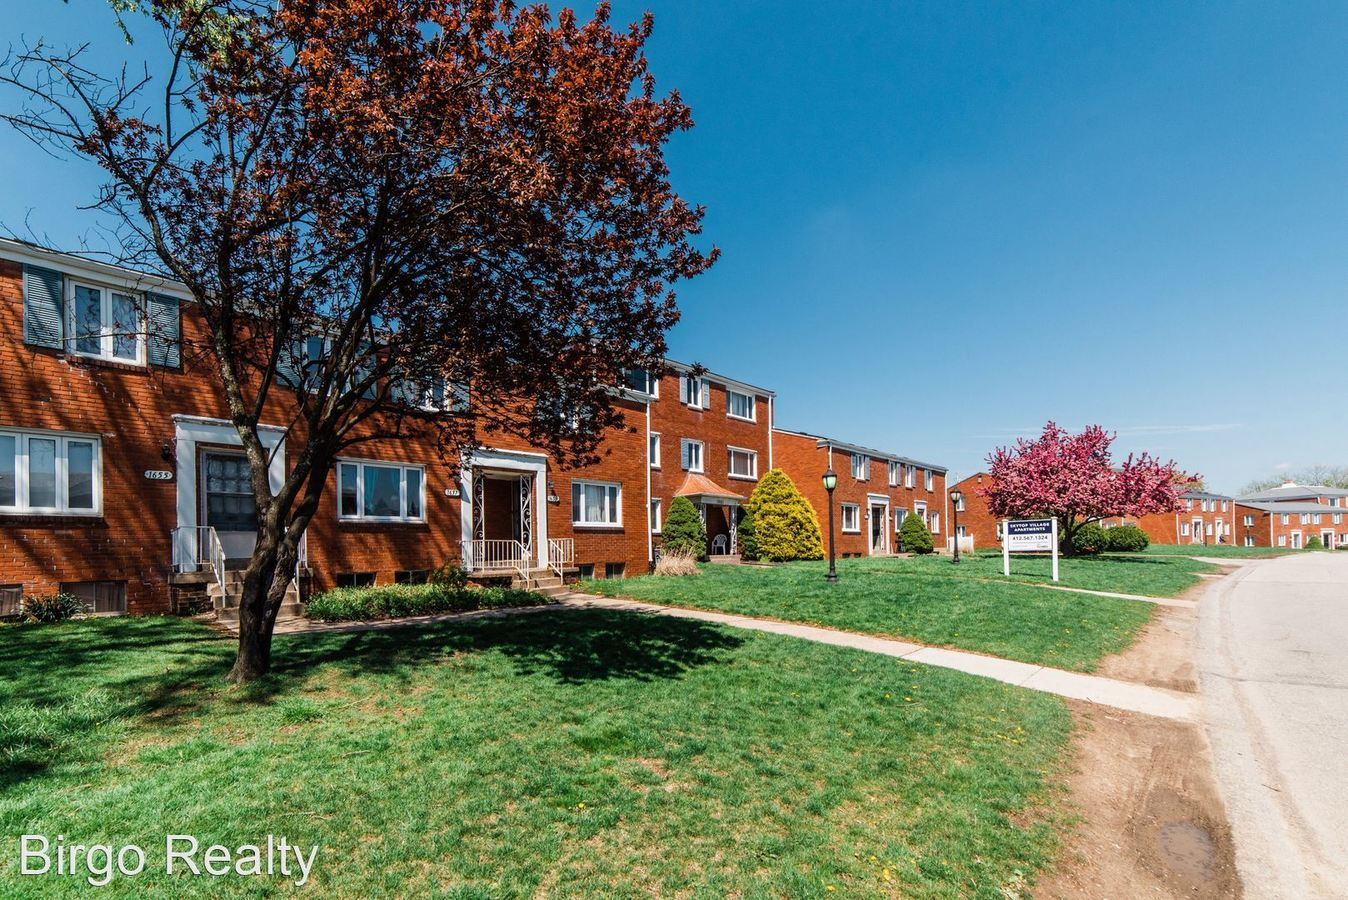 2 Bedrooms 1 Bathroom Apartment for rent at Skytop Village in Pittsburgh, PA